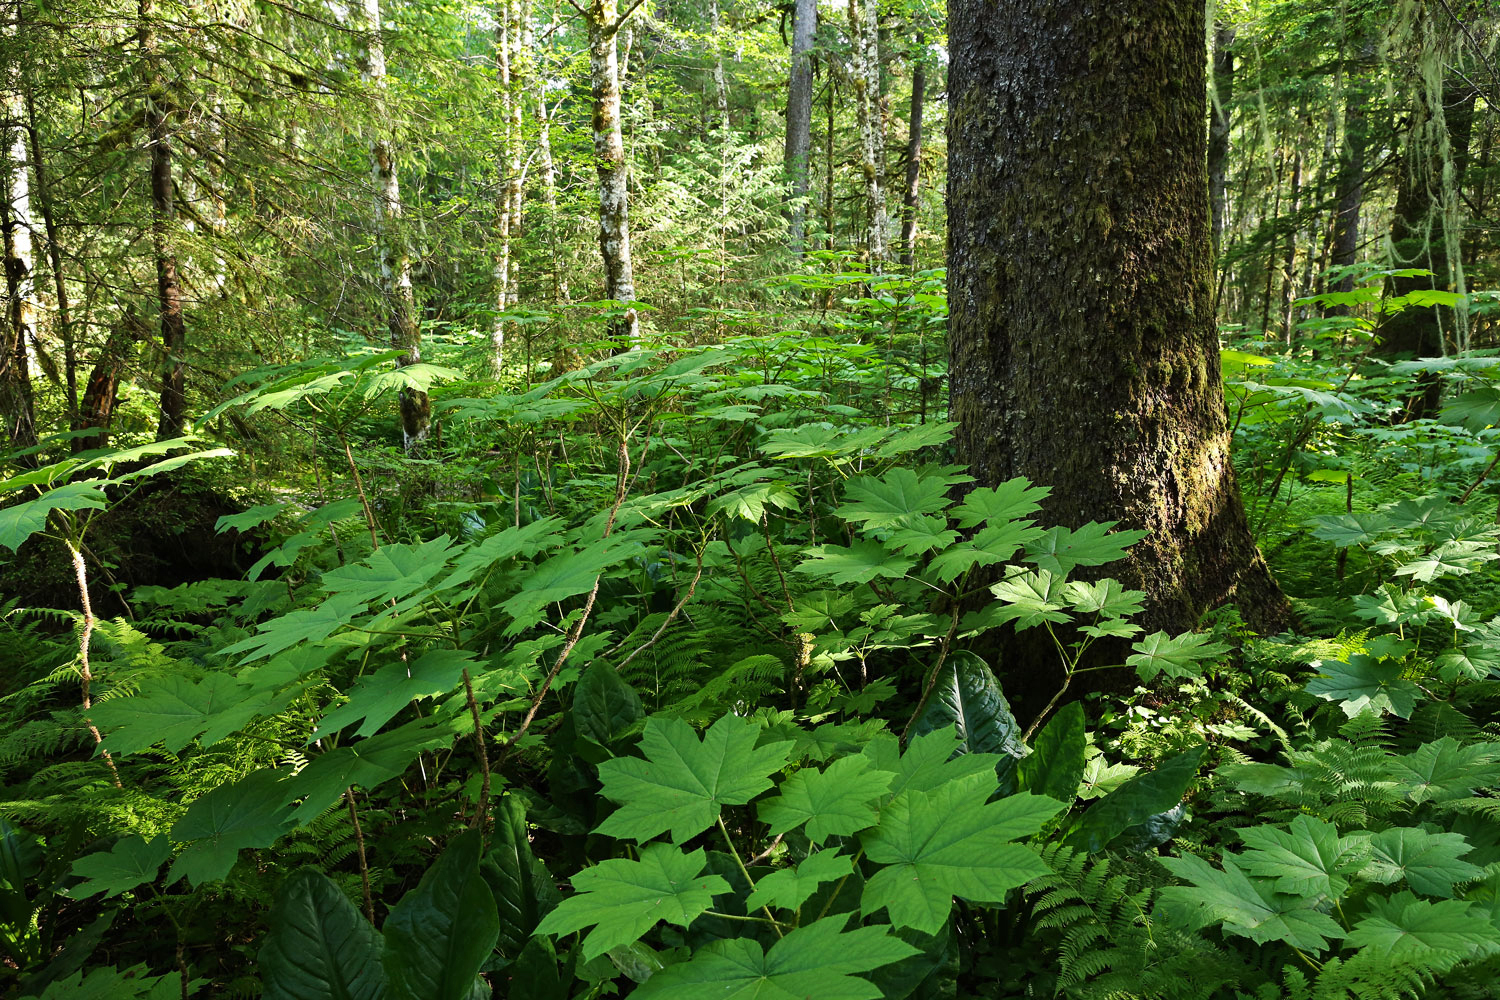 A healthy forest understory has a wide variety of plants.